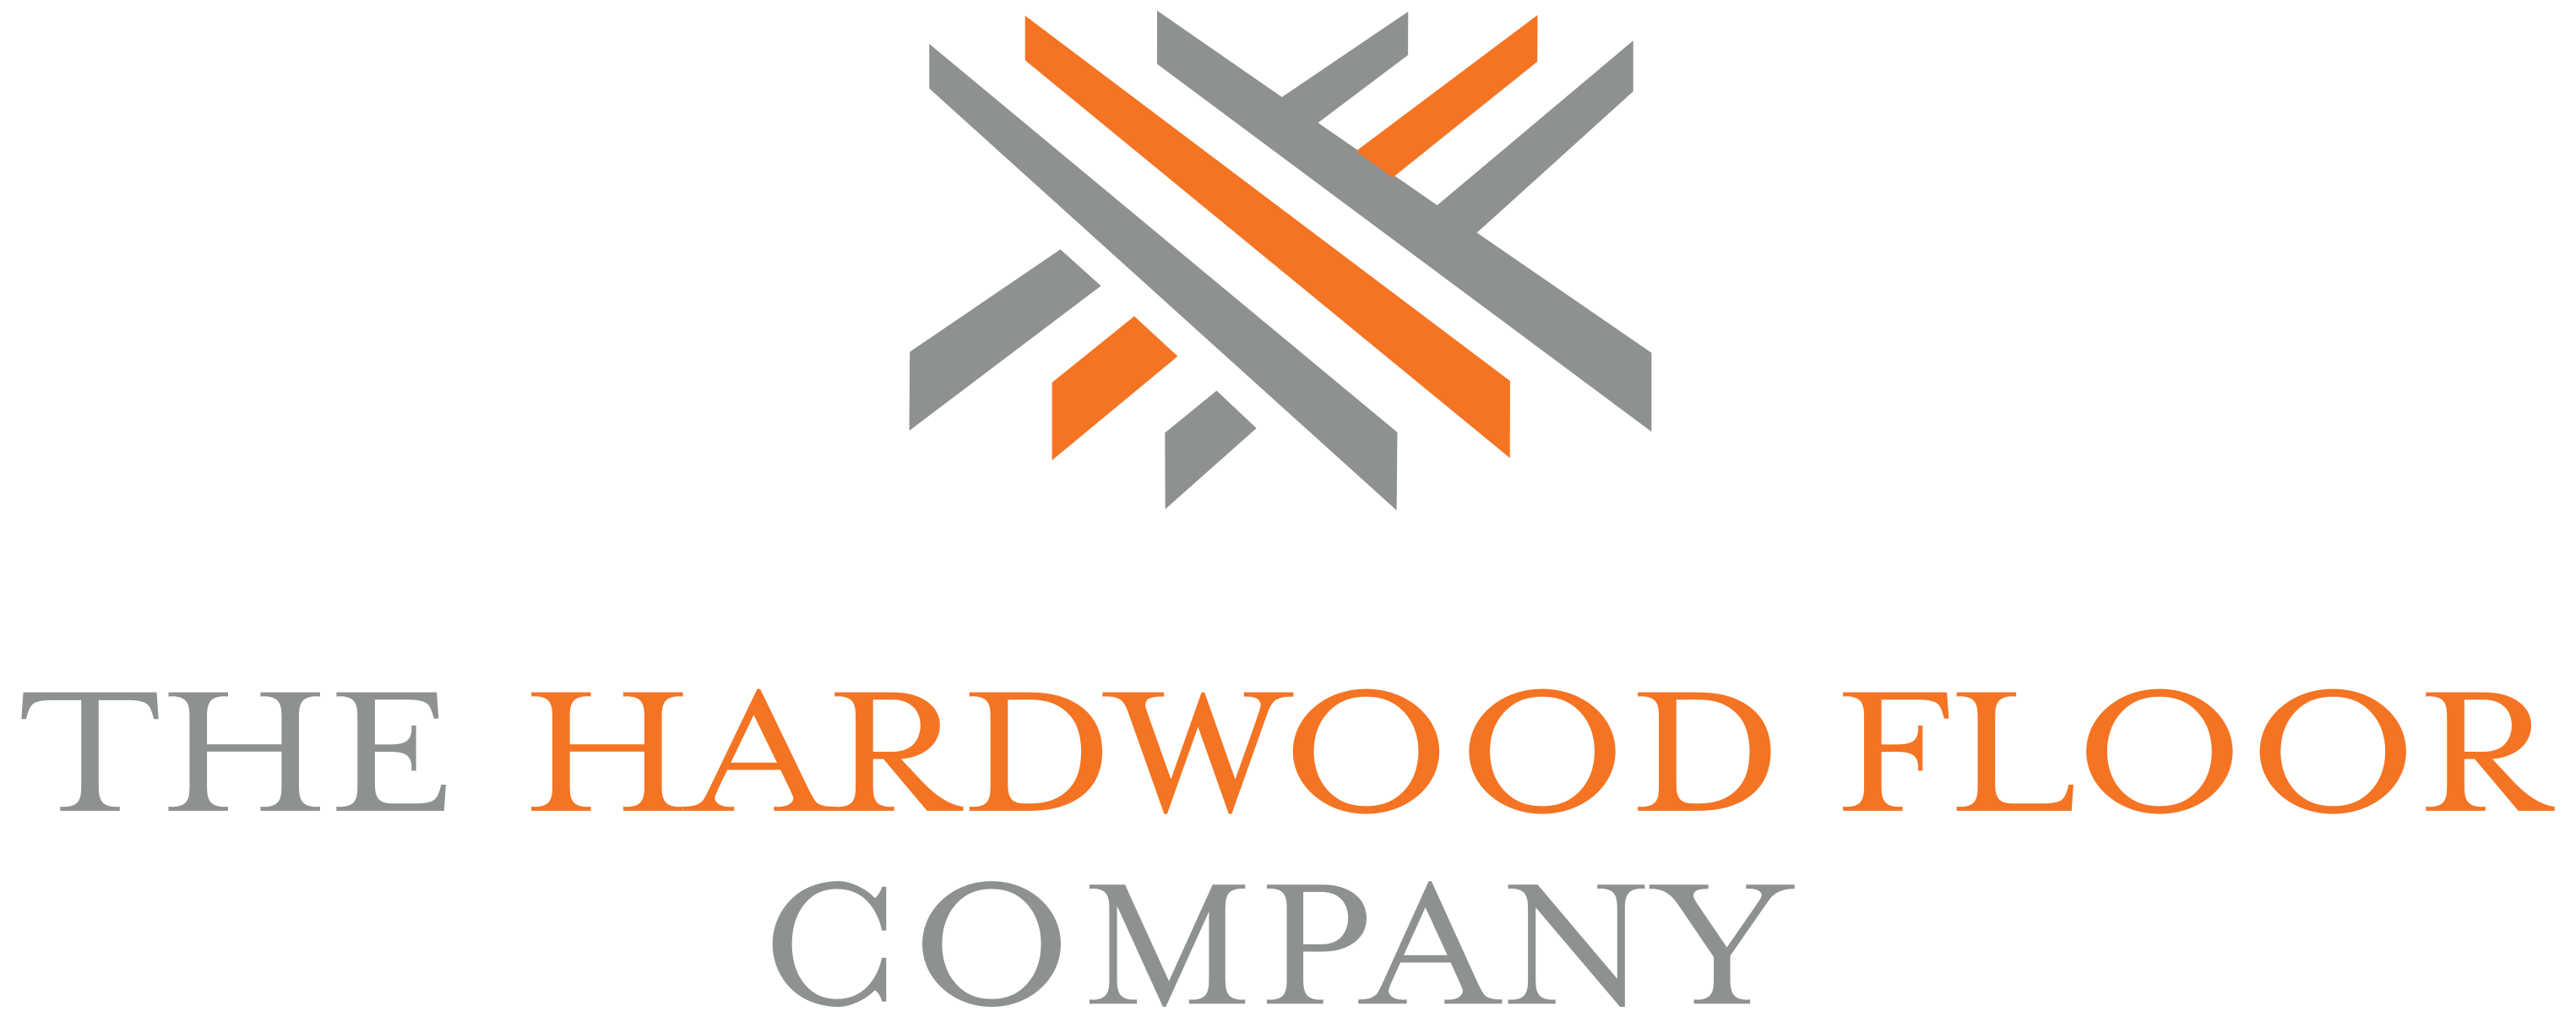 The Hardwood Floor Company